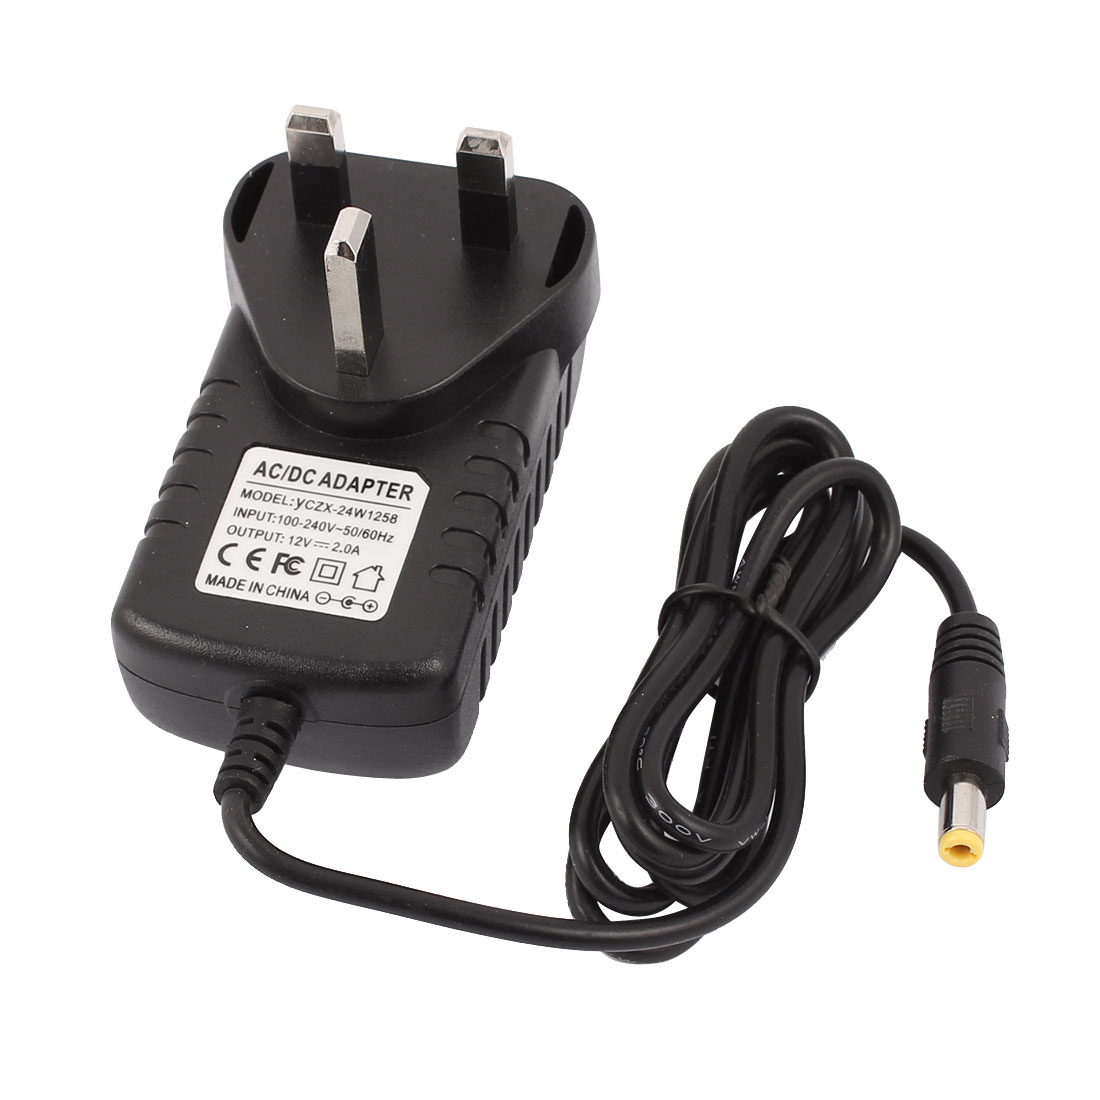 100-240V to 12V 2A AC/DC Power Supply Adapter Cord Charger 5.5x2.1mm UK Plug